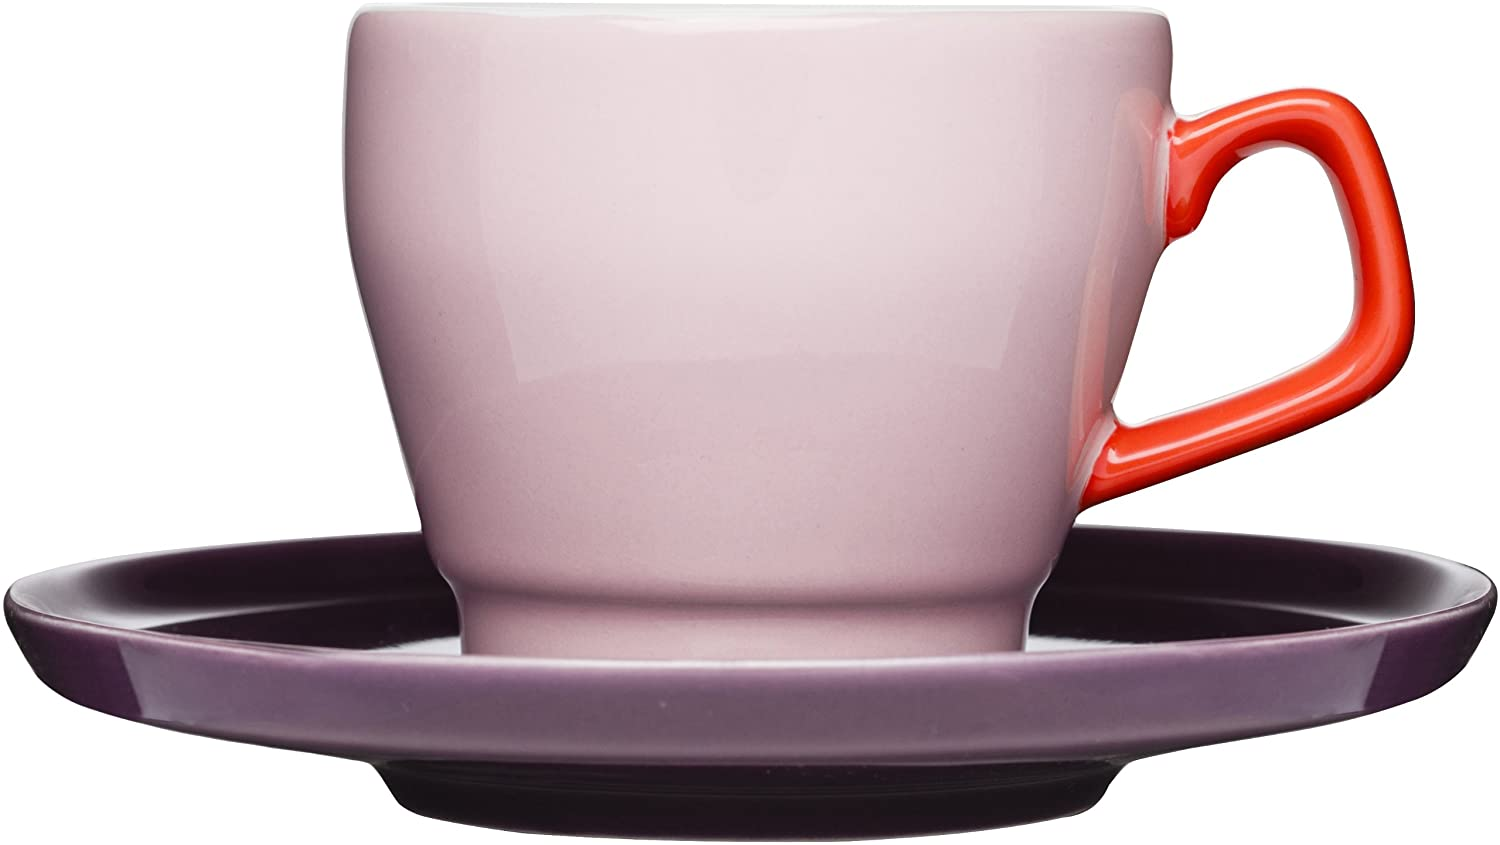 Sagaform POP Stoneware Coffee Cup and Saucer, 8-1/2-Ounce, Pink/Red/Plum Sagaform Inc 5016580